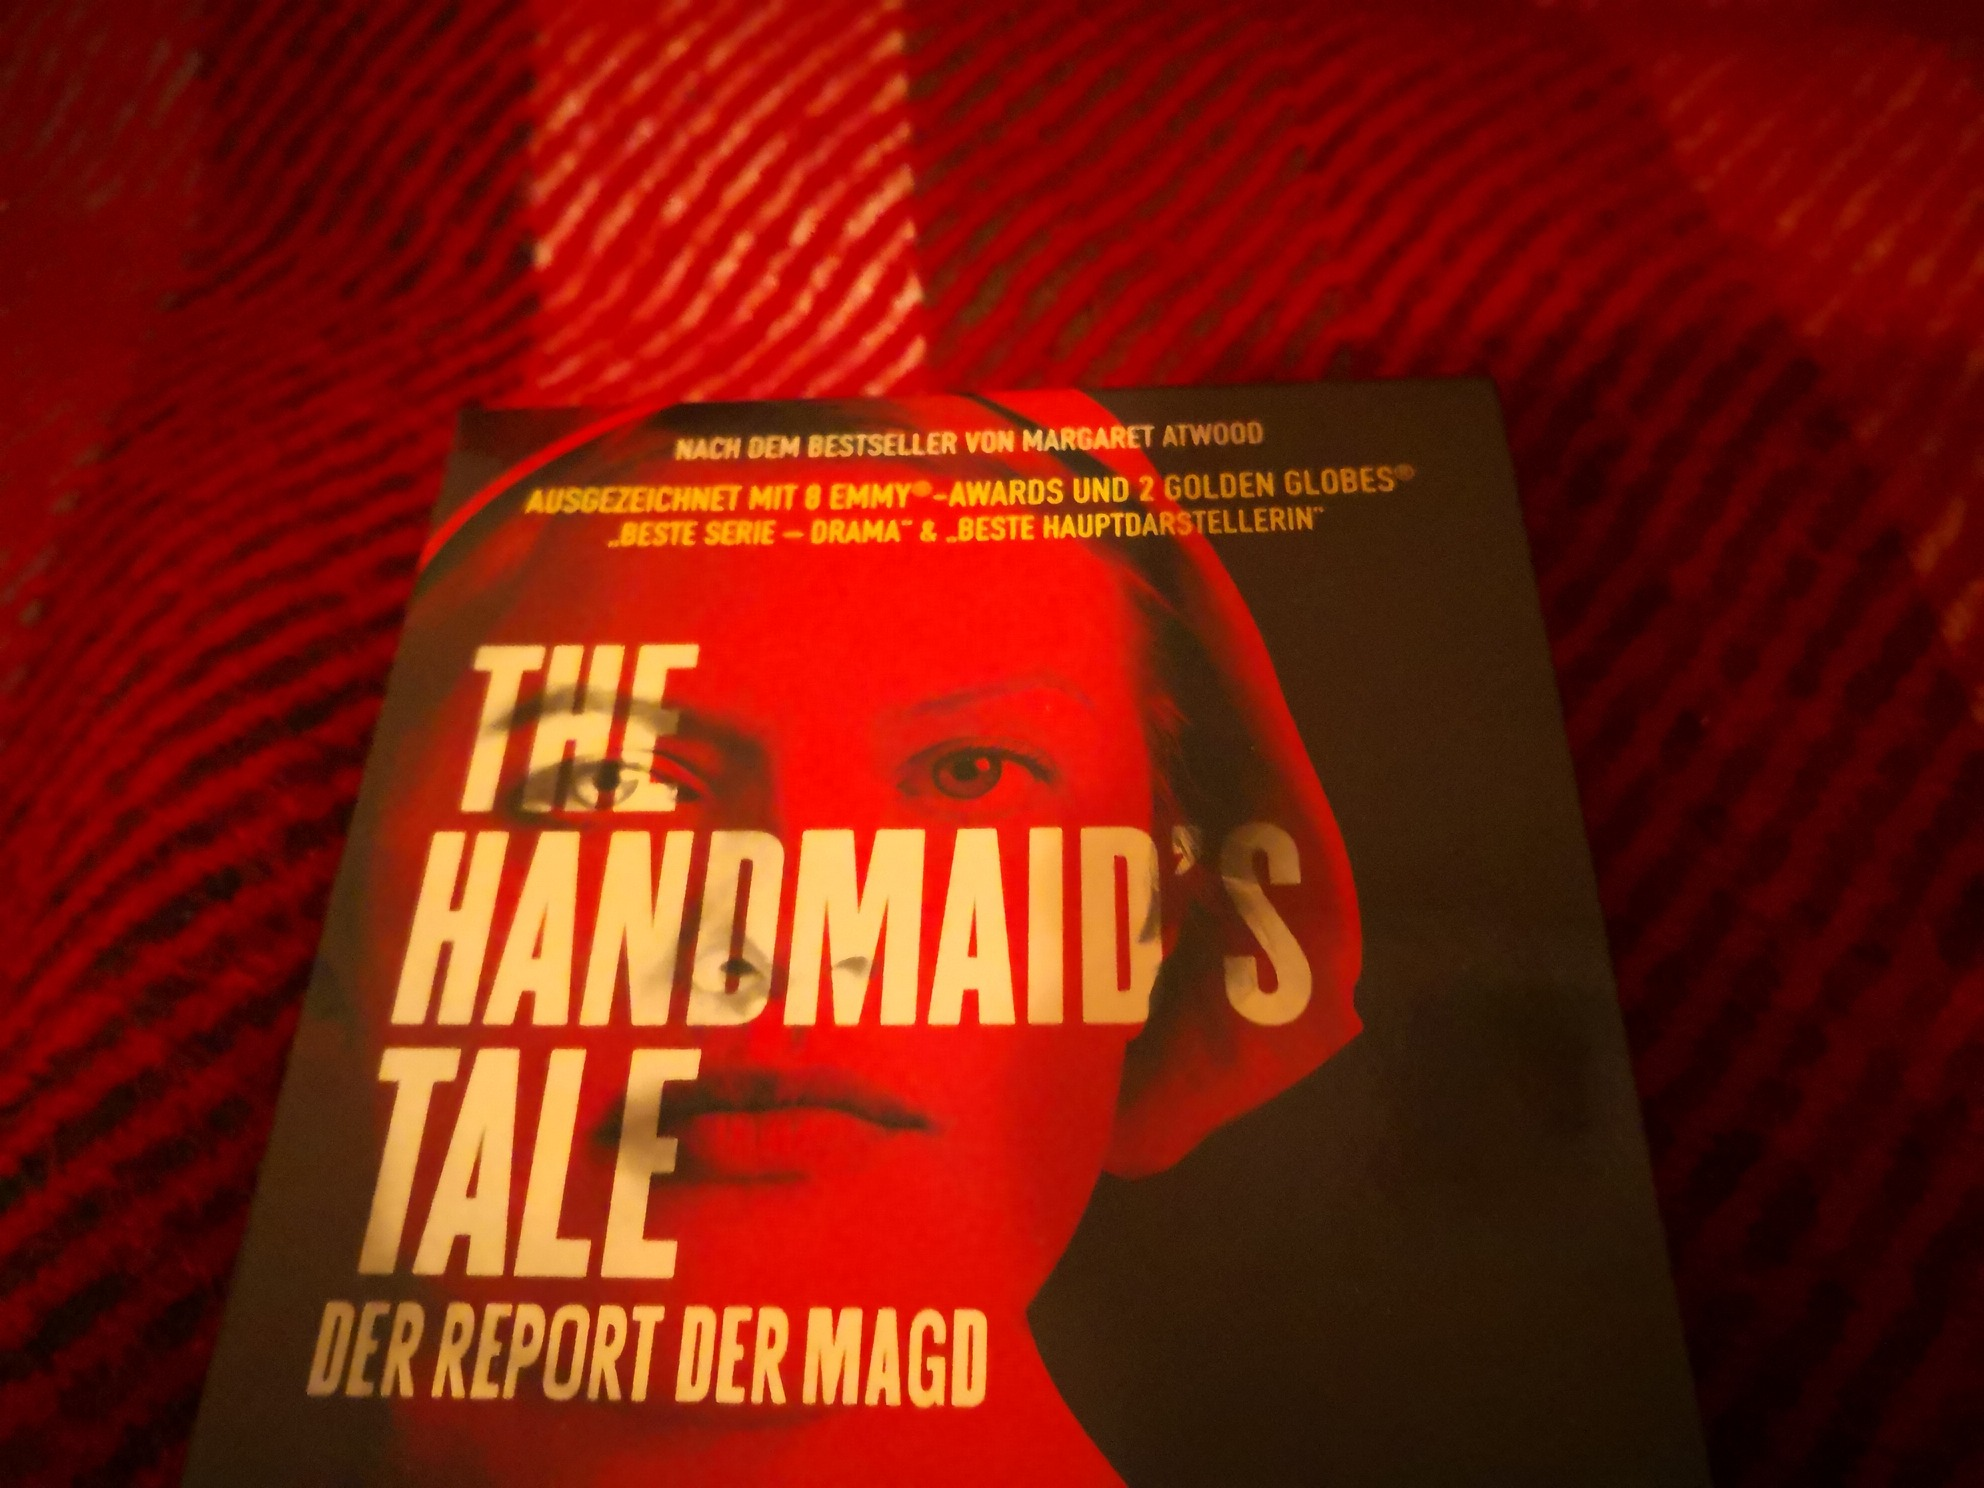 The Handmaid's Tale, Foto (c) Andrea Pickl - kekinwien.at